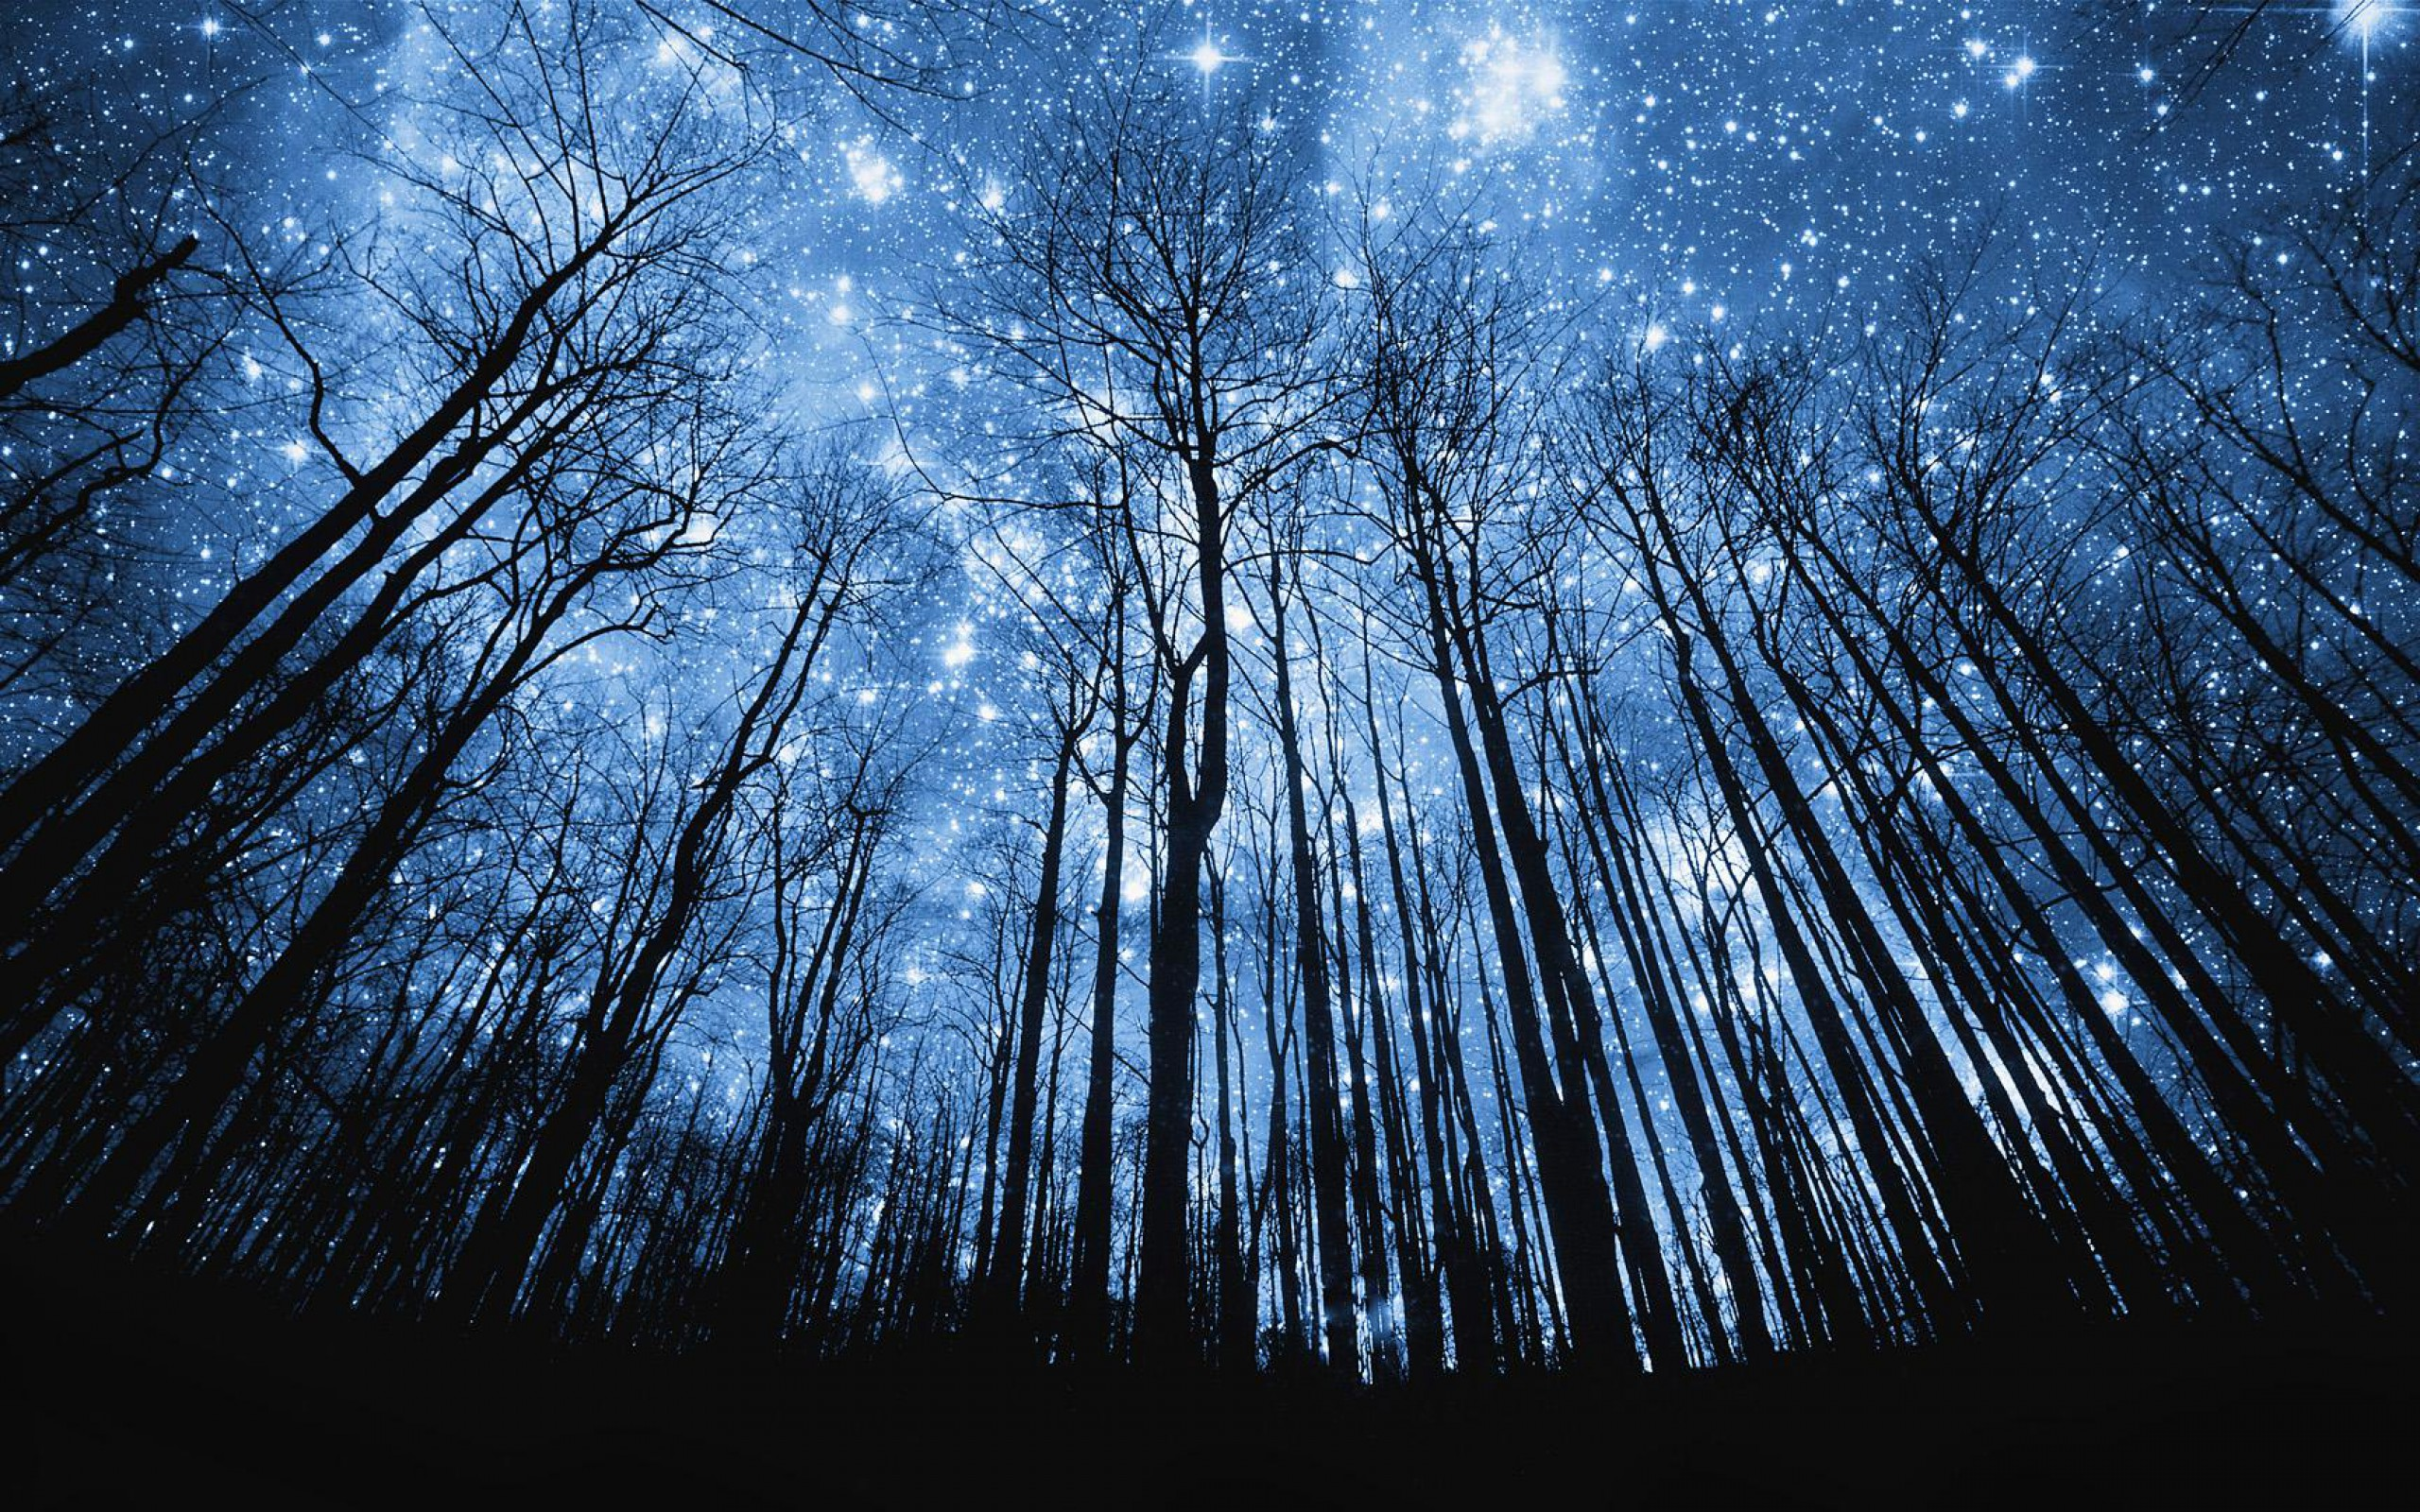 Weekly Wallpaper Enchant Your Desktop With These Starry Night Images 2560x1600